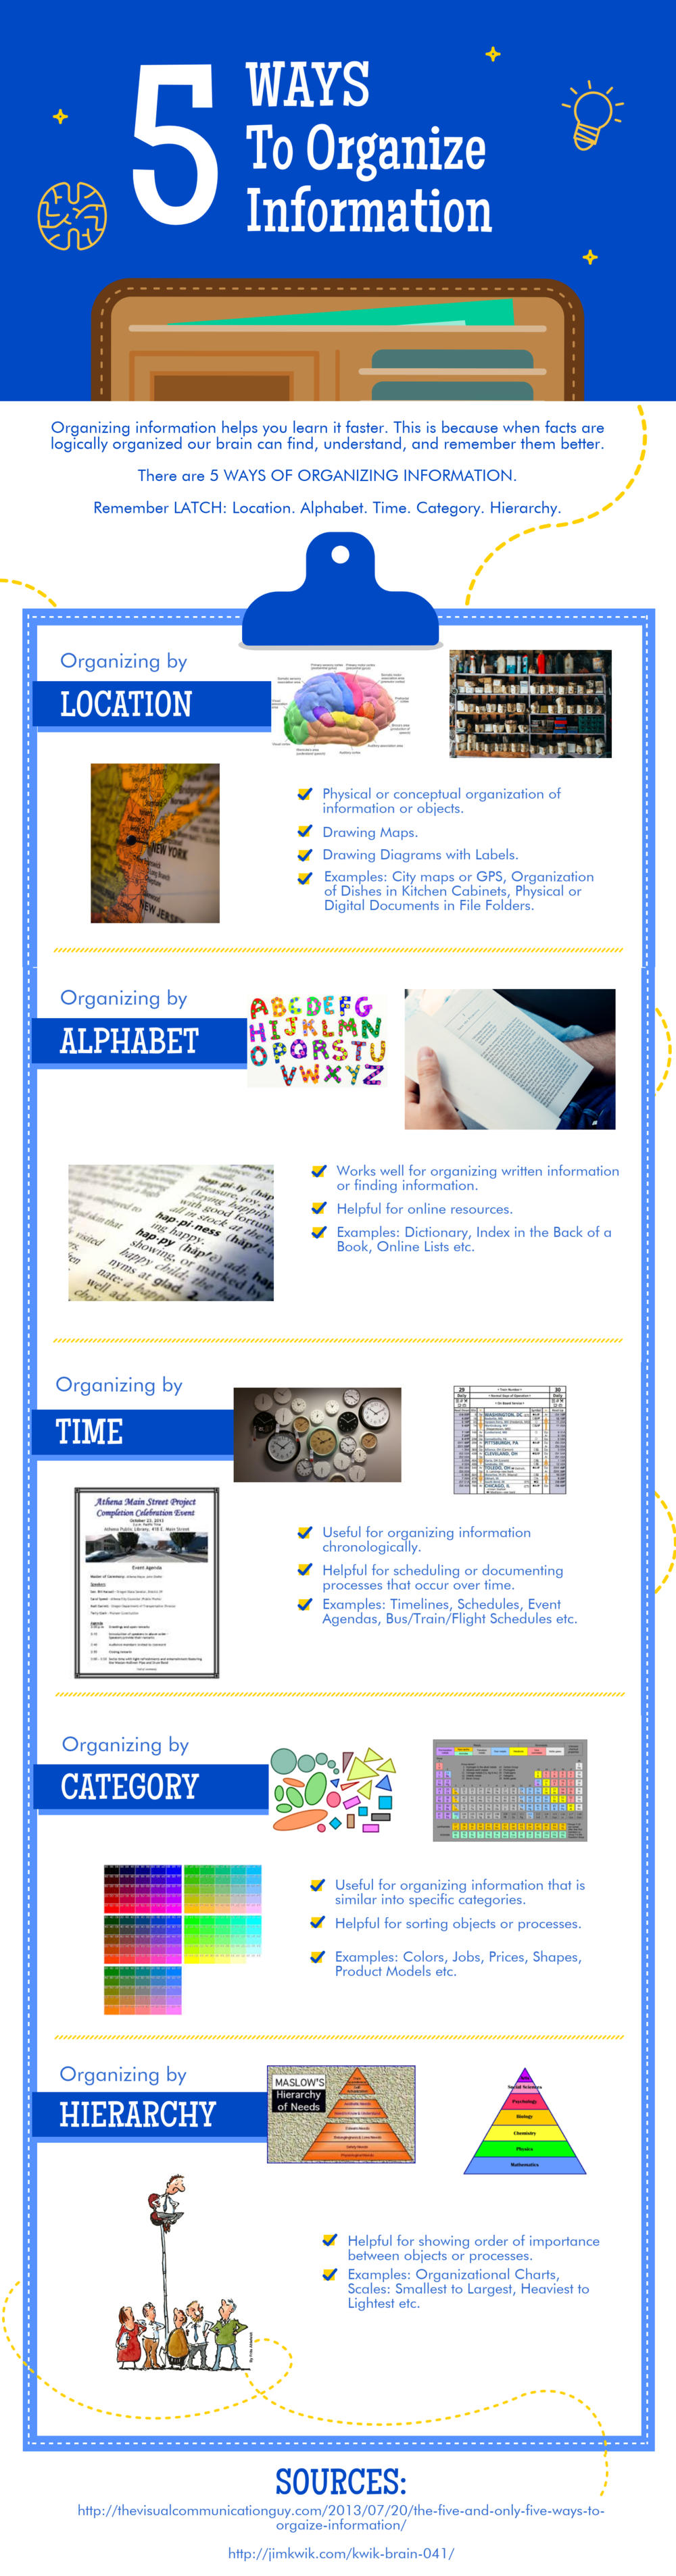 Focus 2 Achieve - How To Organize Information - Infographic